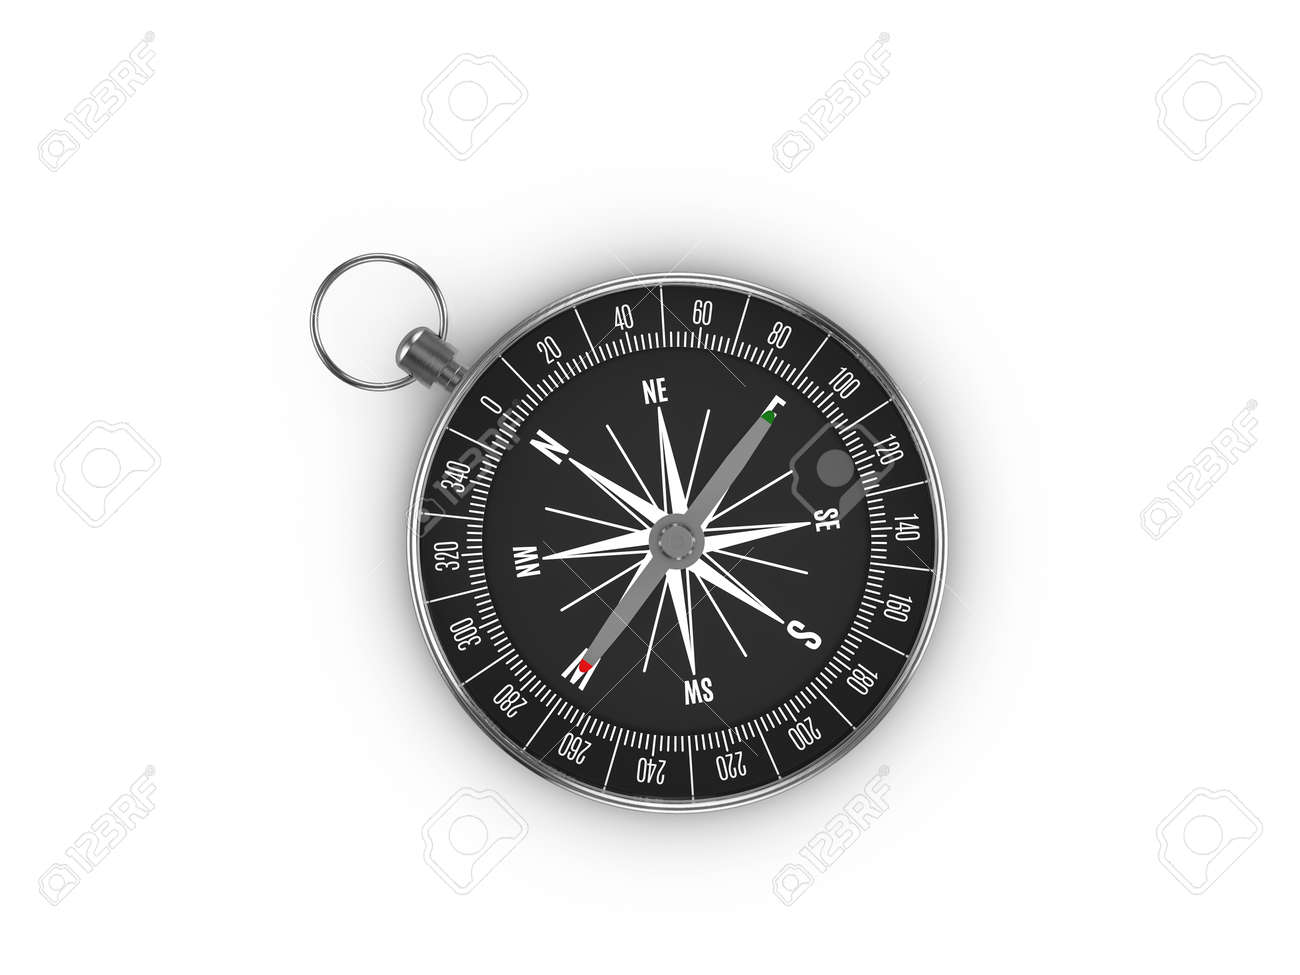 Compass on a white background. 3d illustration. - 165811148